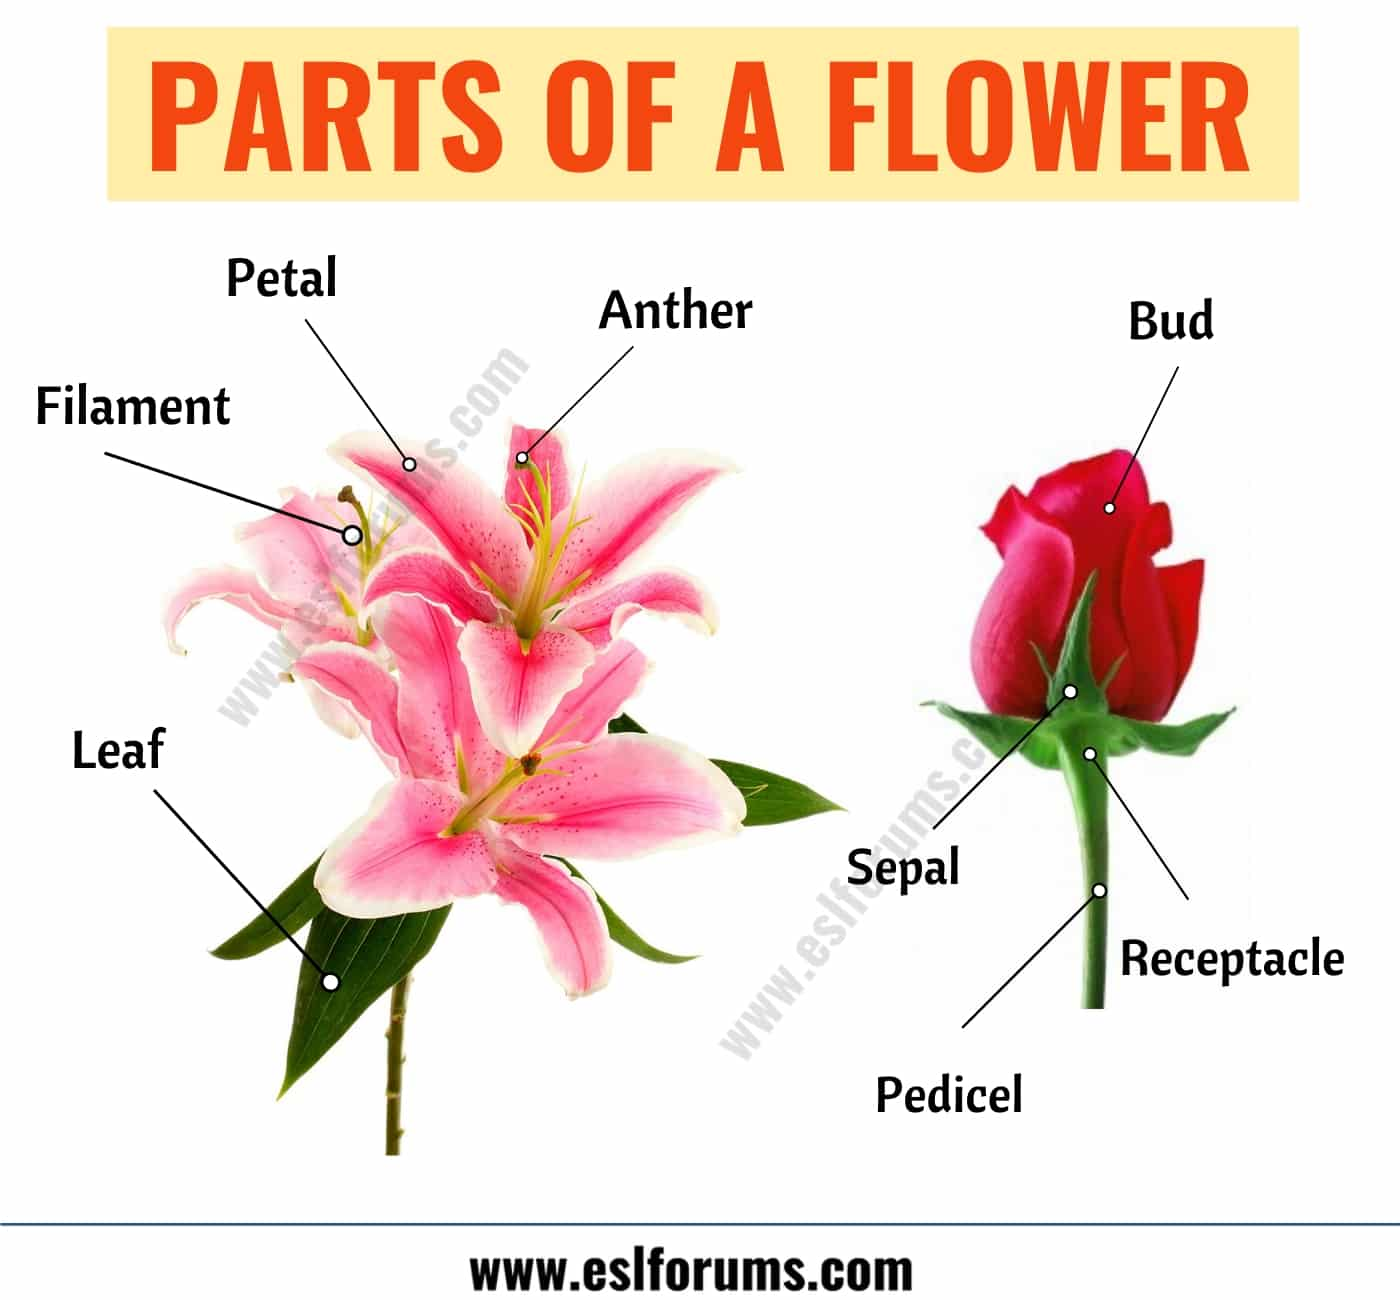 Parts of a Flower: Learn Different Flower Parts with ESL Picture